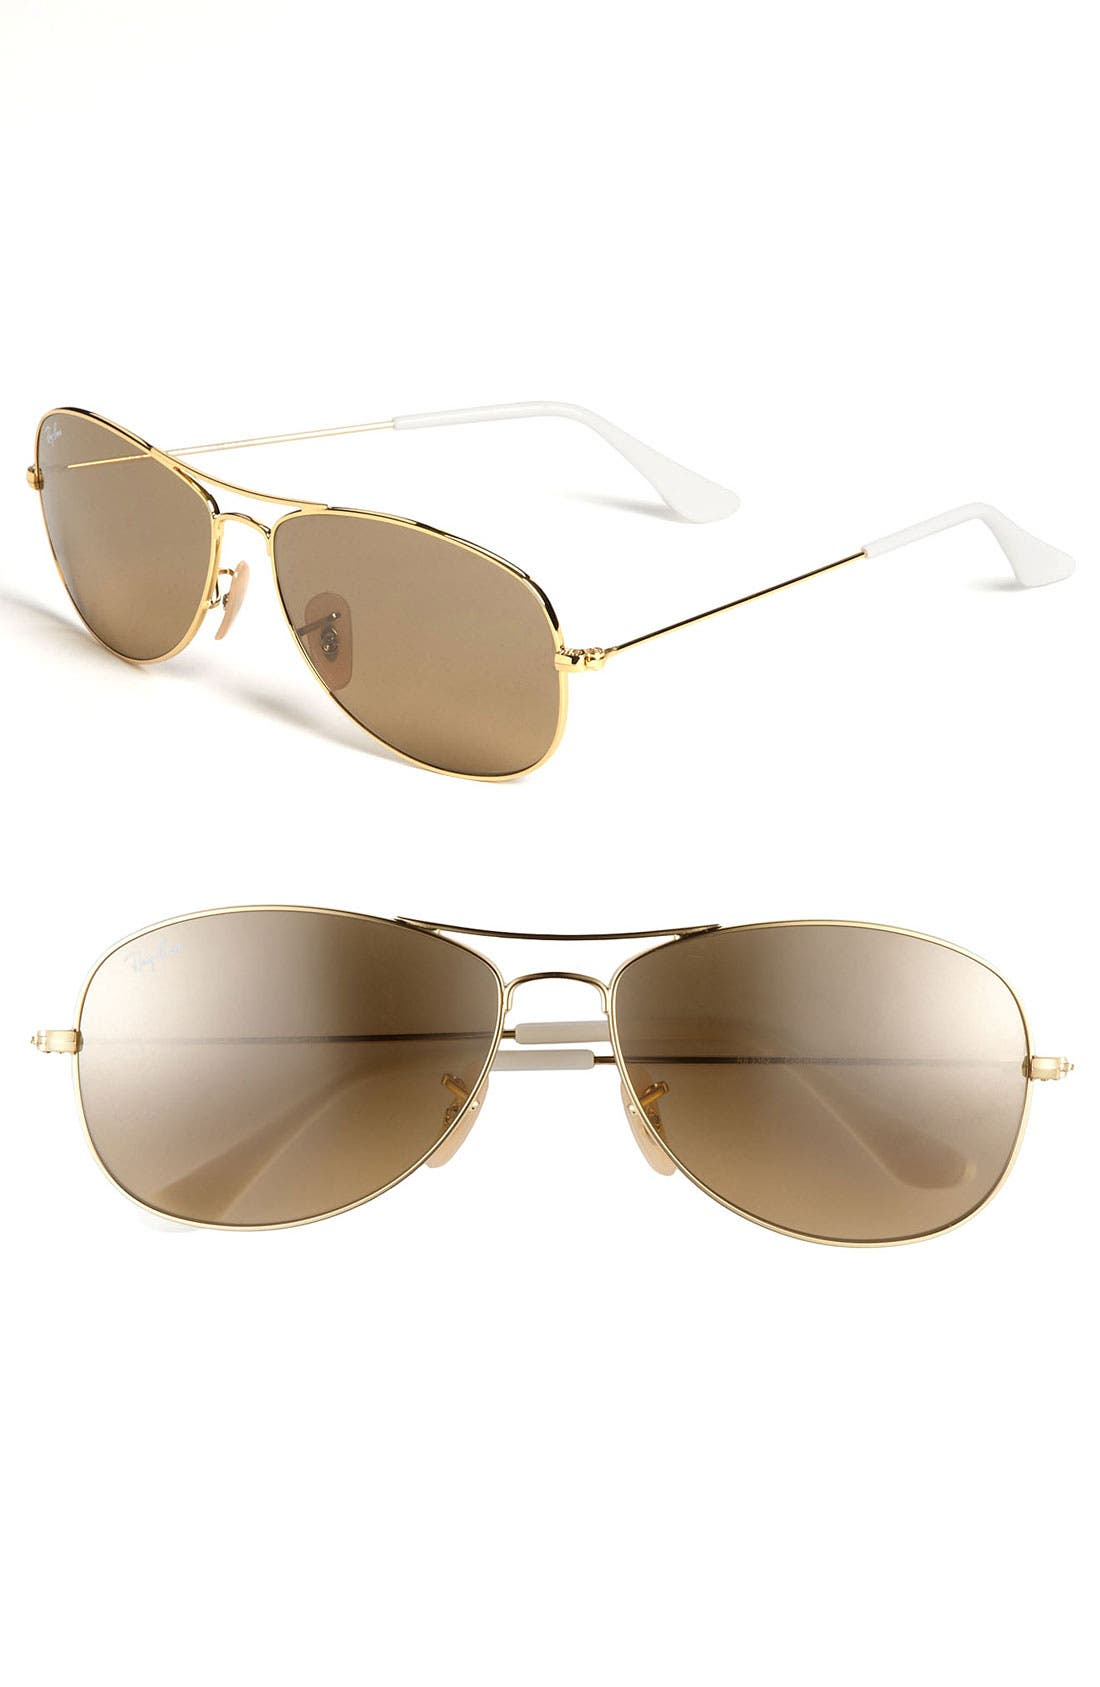 Main Image - Ray-Ban 'New Classic Aviator' 59mm Sunglasses